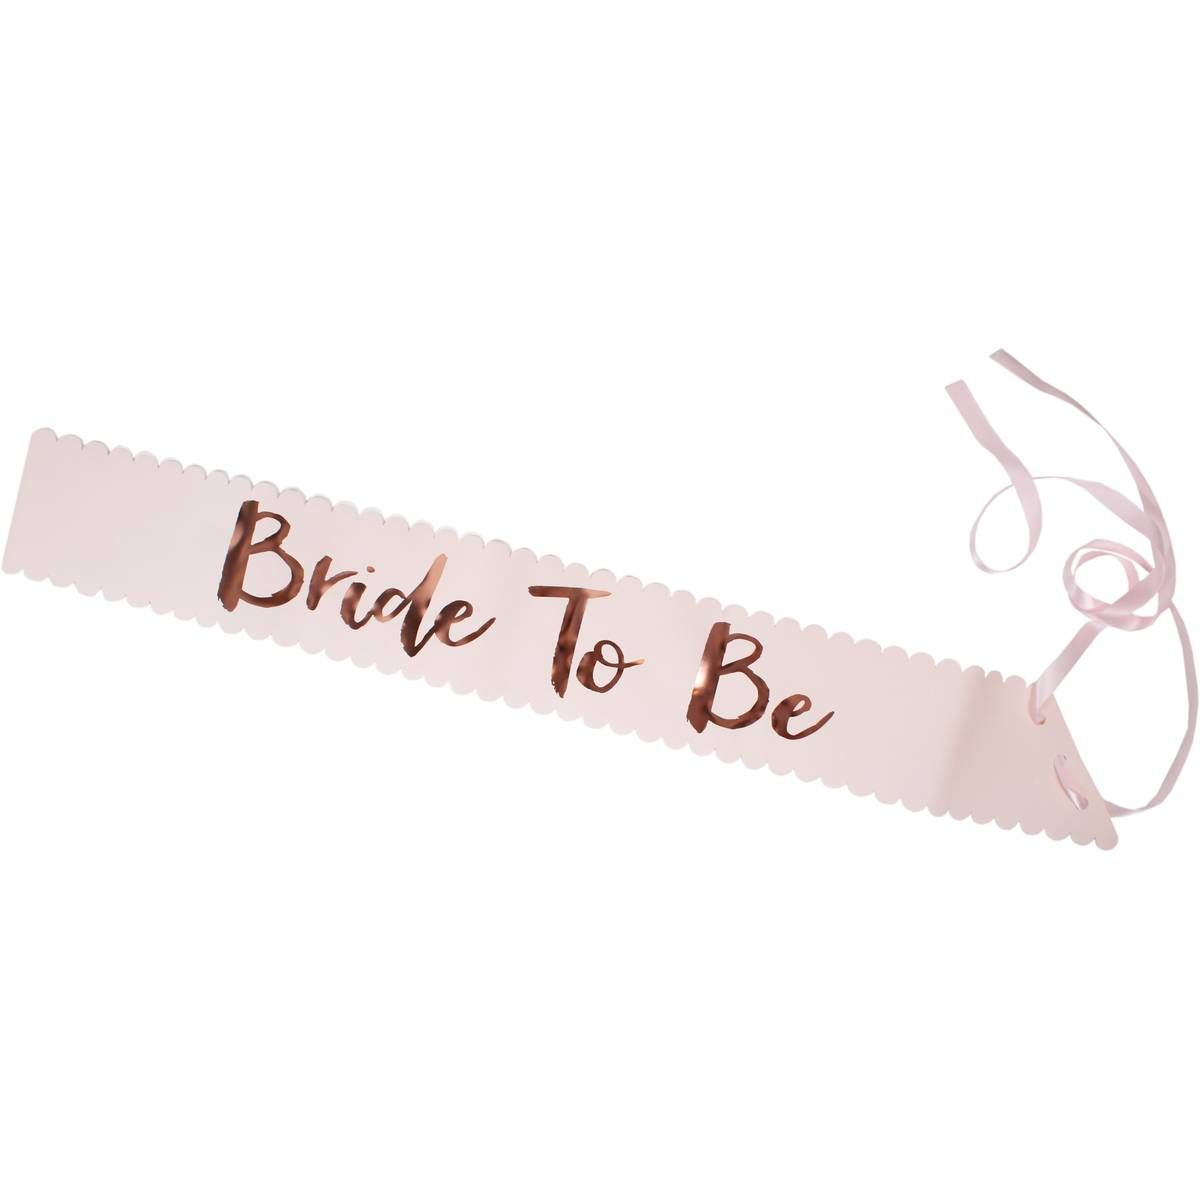 Ginger Ray Rose Gold Bride To Be Sash Hobbycraft Bride To Be Sash Bride Team Bride